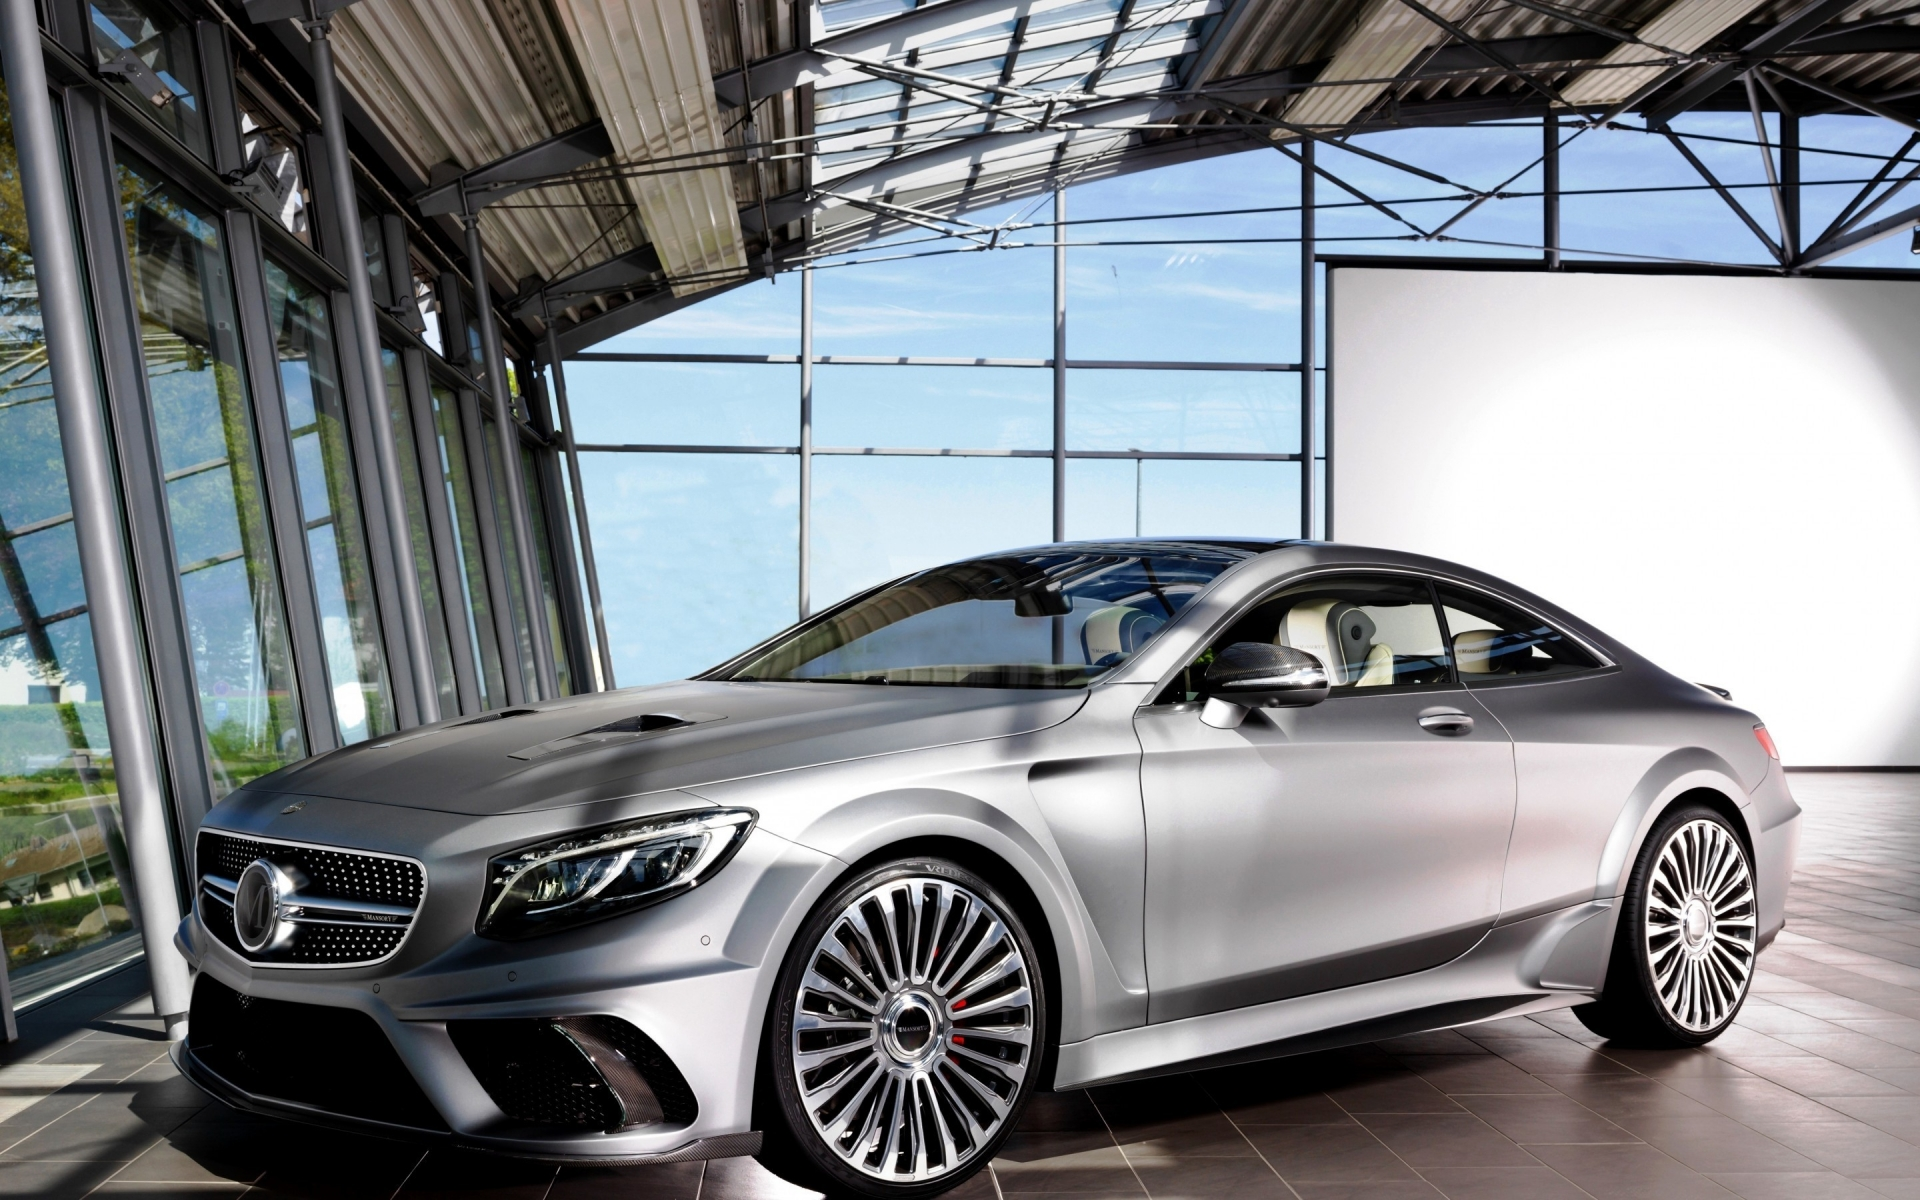 Mansory S 63 AMG Diamond Edition for 1920 x 1200 widescreen resolution